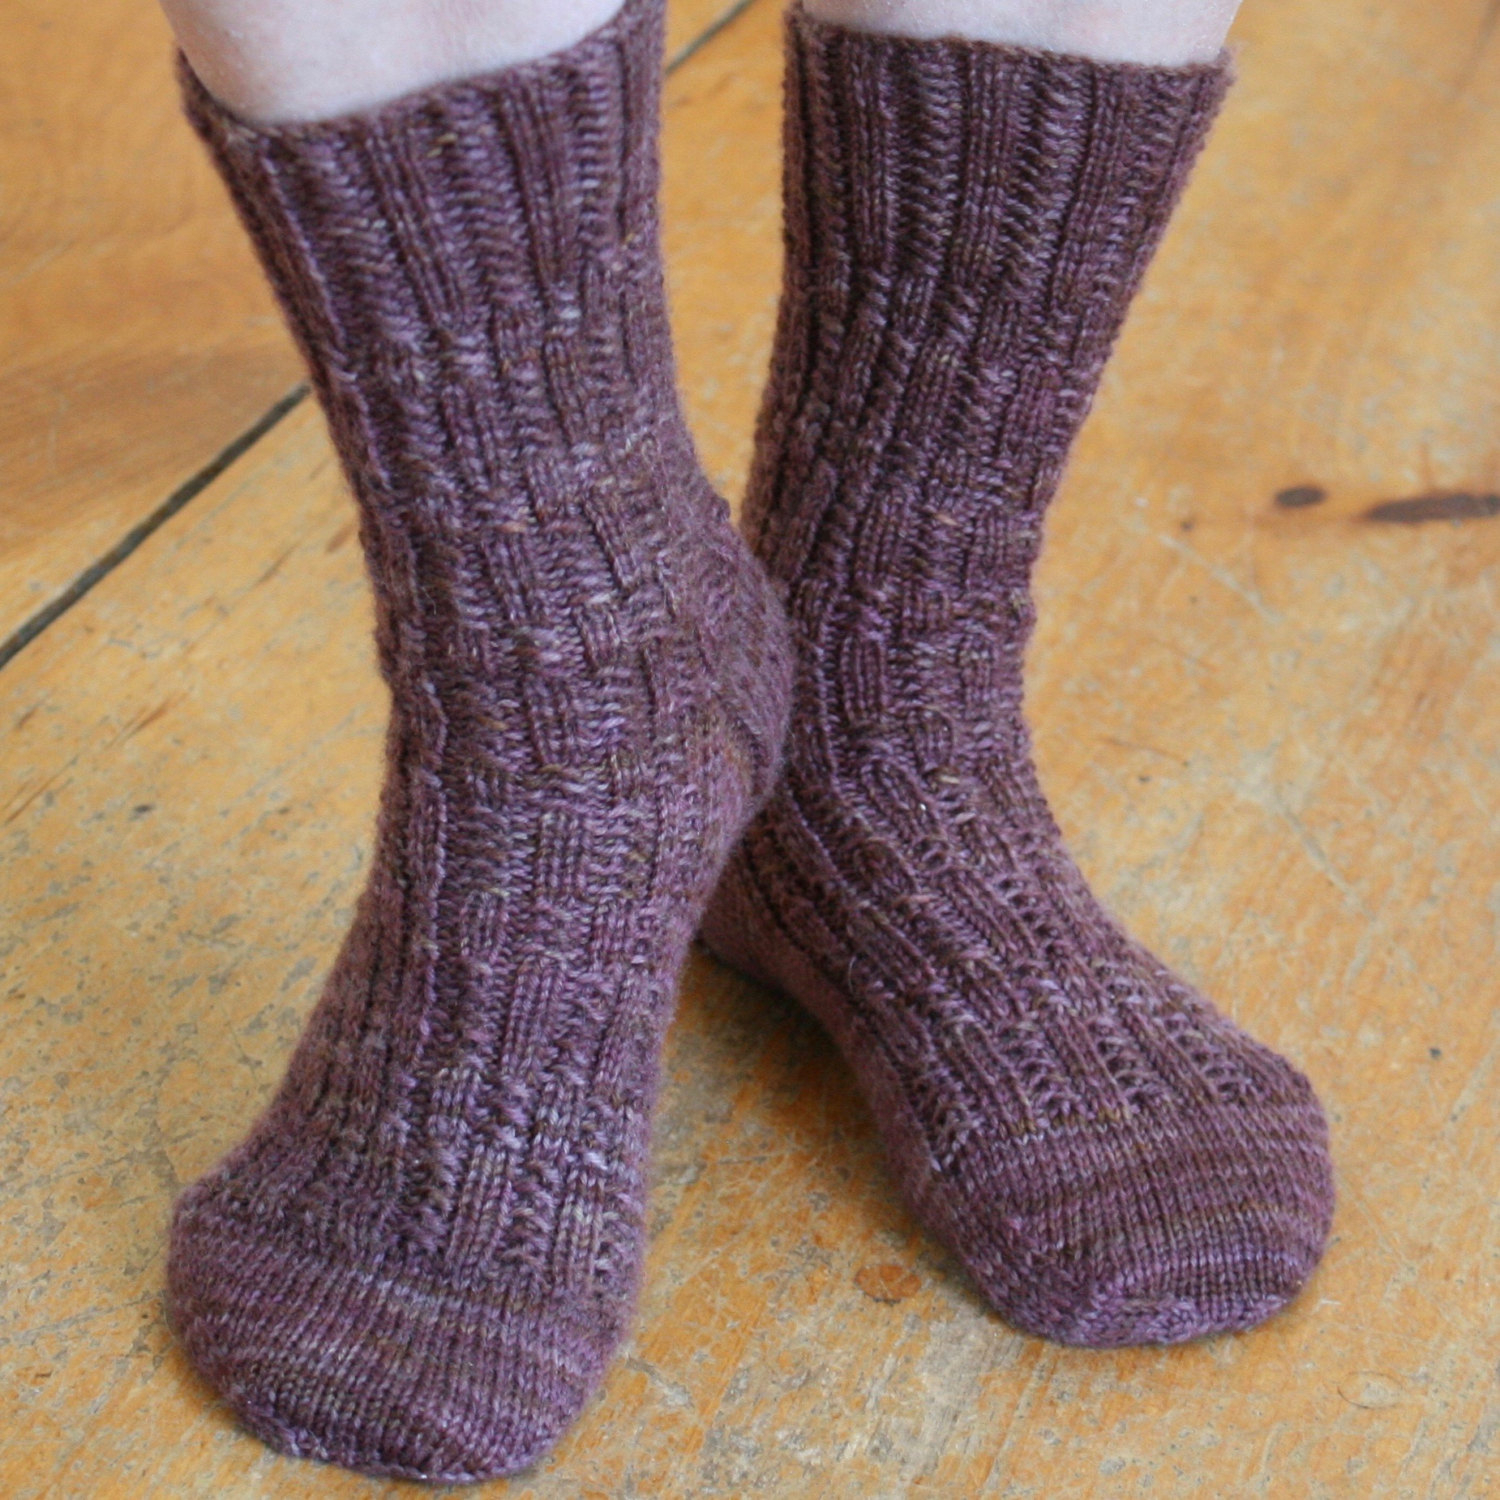 Knitting Patterns For Socks Sock Knitting Pattern Pdf Knit Sock Pattern Knitted Socks Pattern Ribbing Rib Stitch Sock Knitting Pattern Two Block Socks